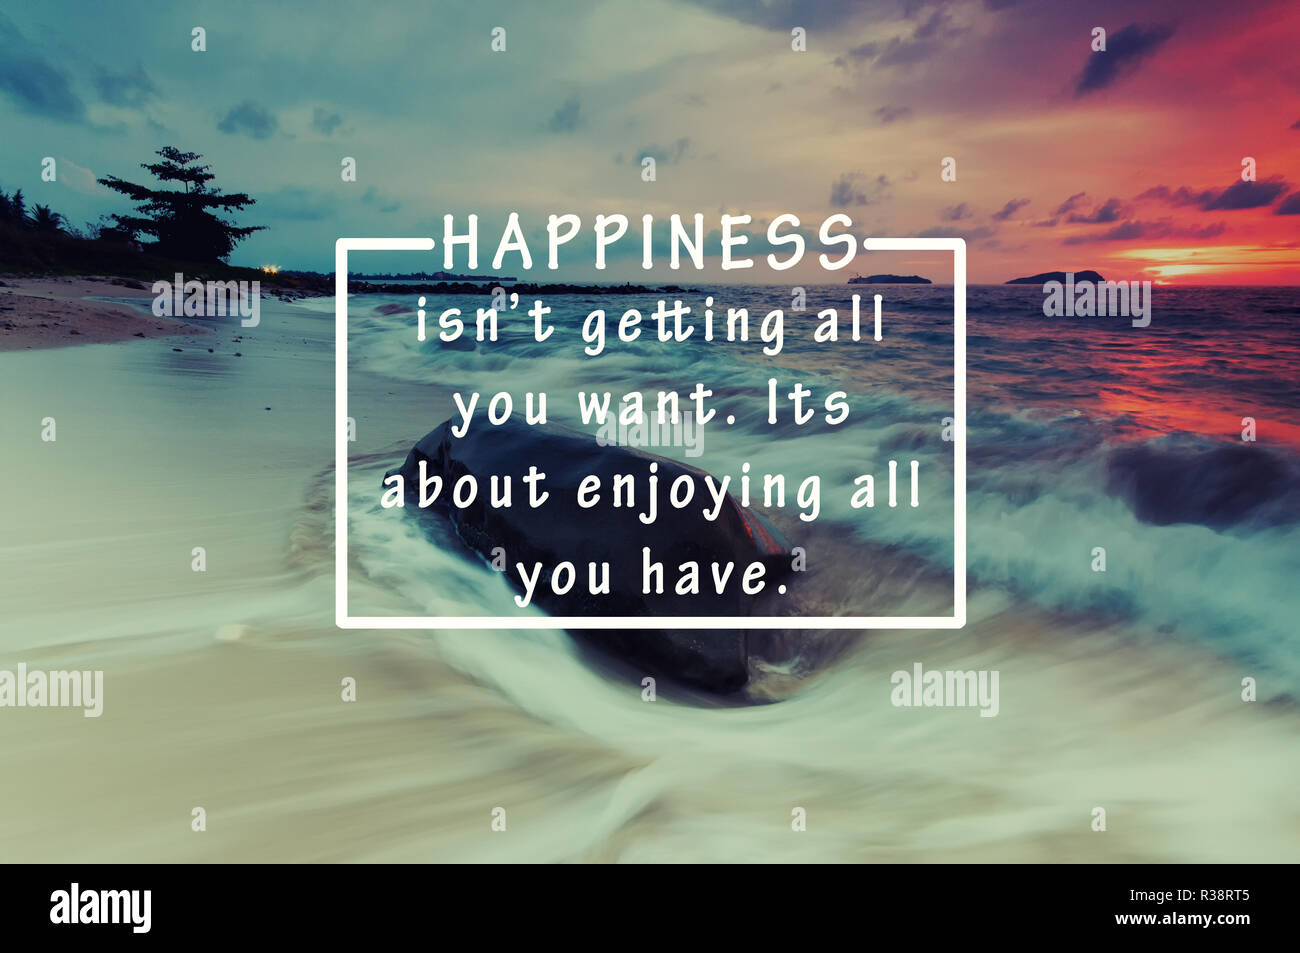 Inspirational Life Quotes Happiness Isn T Getting All You Want Its About Enjoying All You Have Sunset Background Stock Photo Alamy